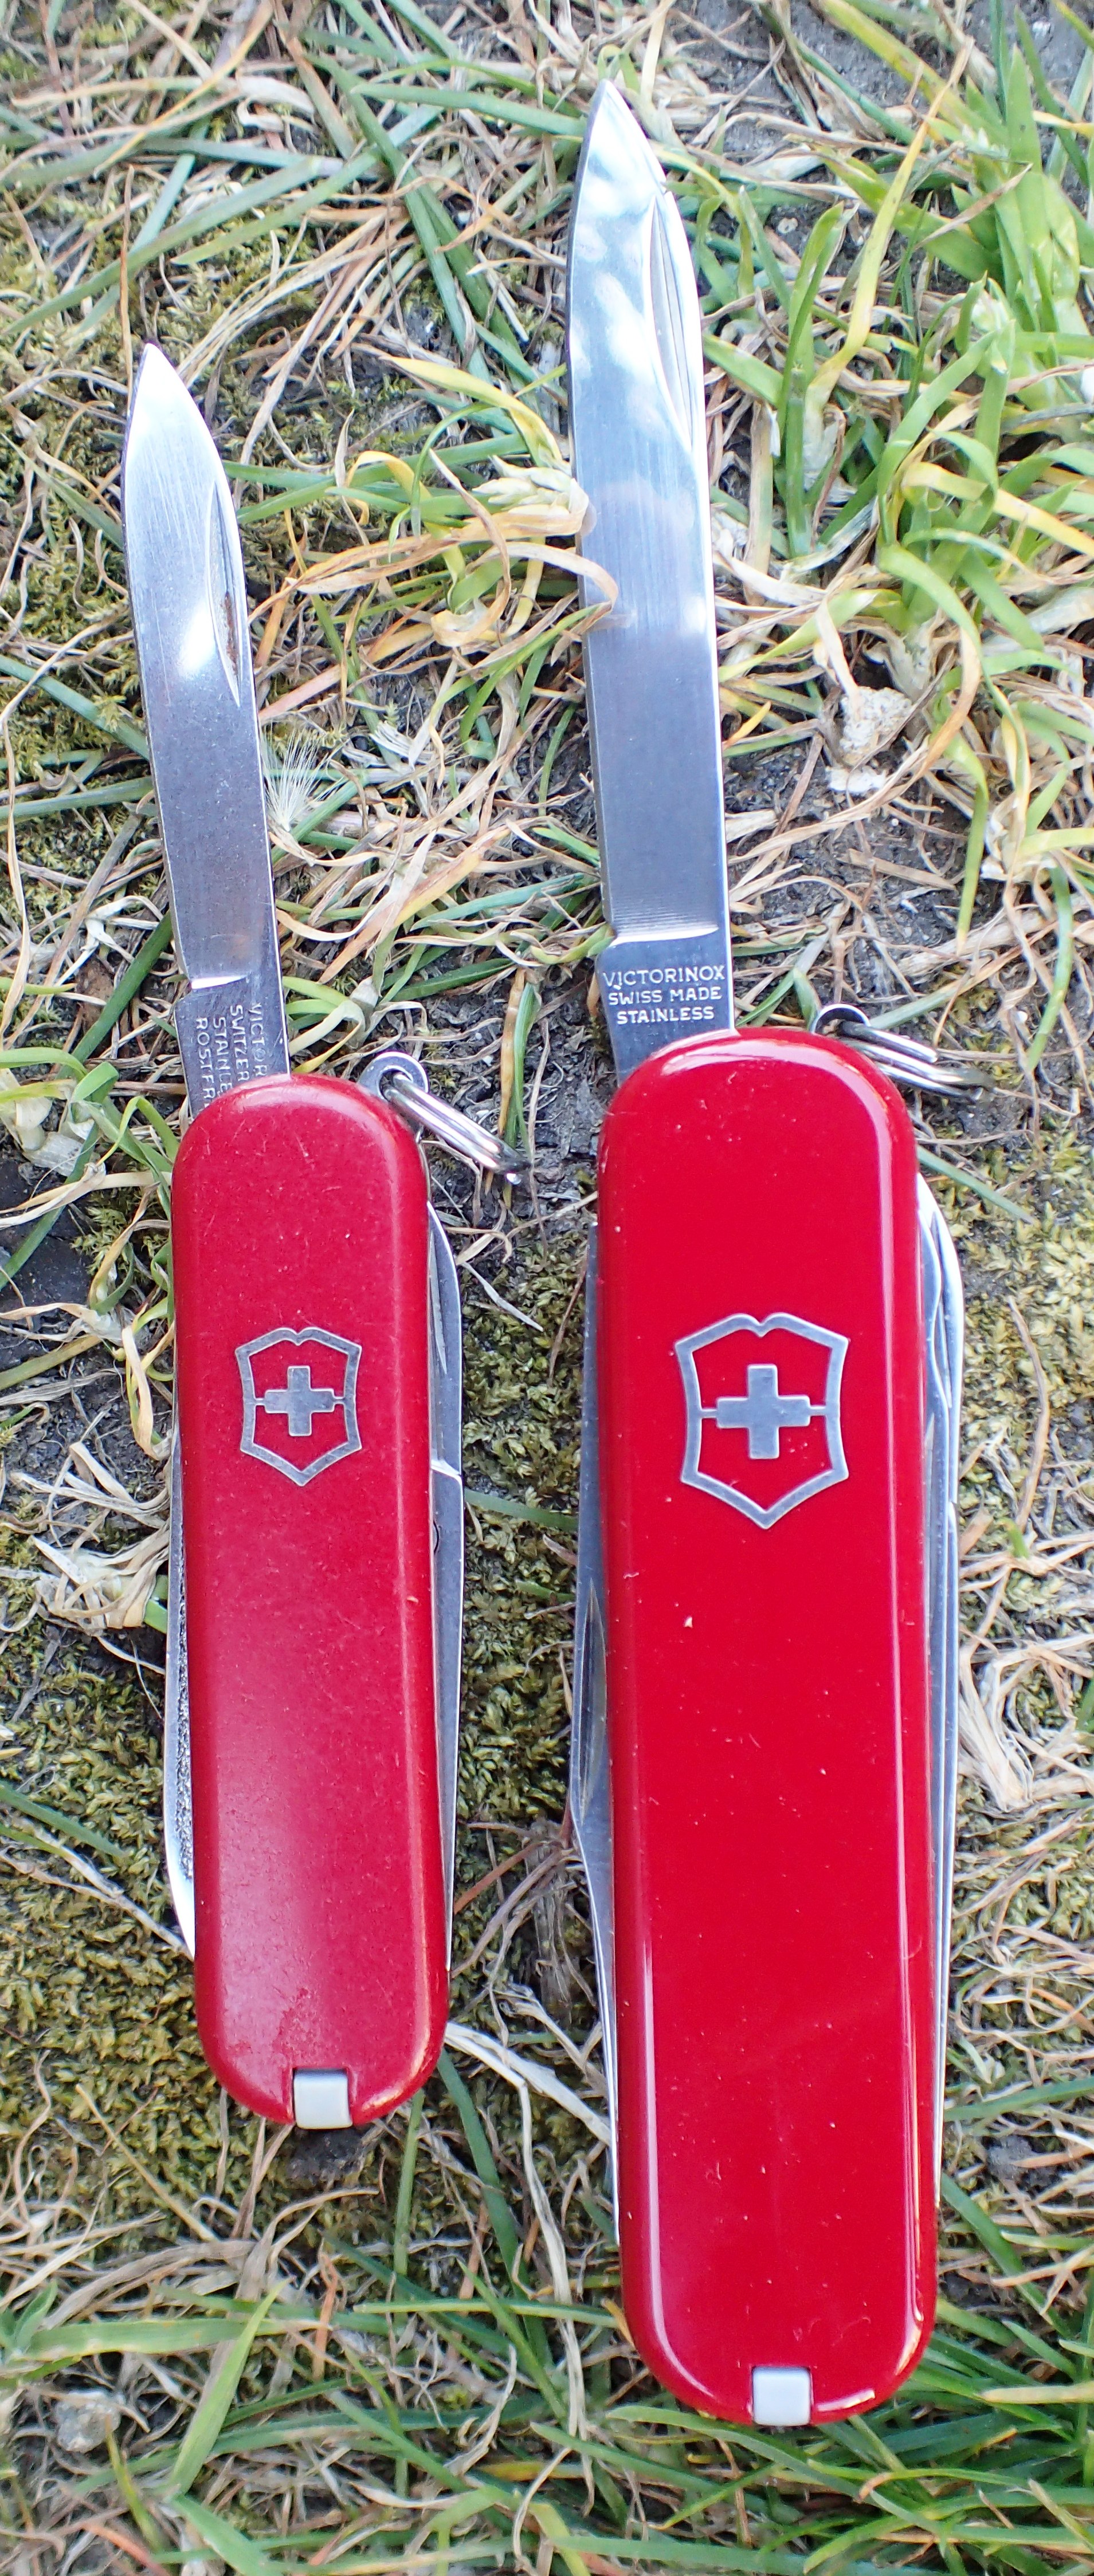 Main blades on Victorinox Classic and Executive compared